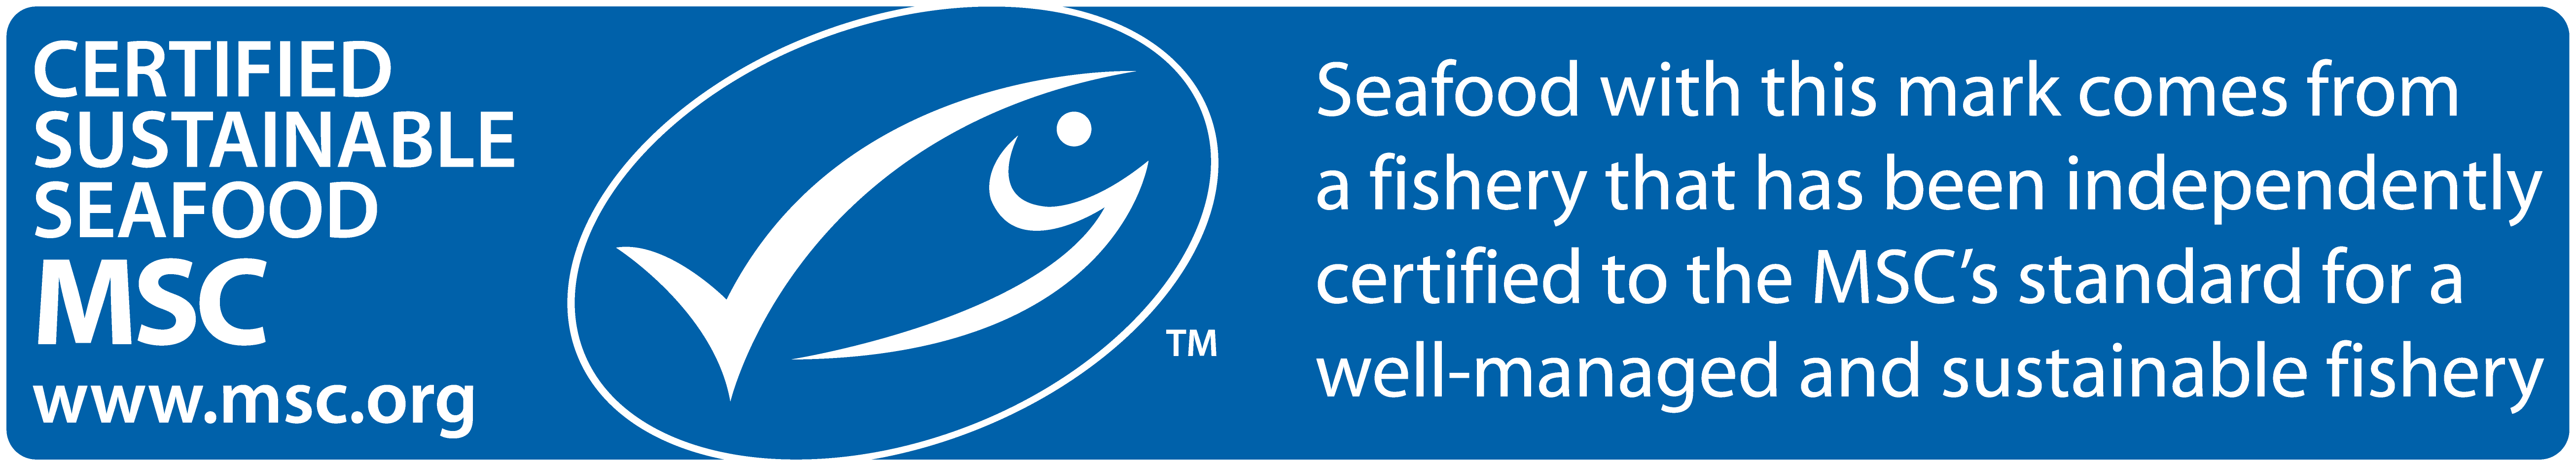 Sustainable fish selected at fish co msc certification ecolabel xflitez Choice Image